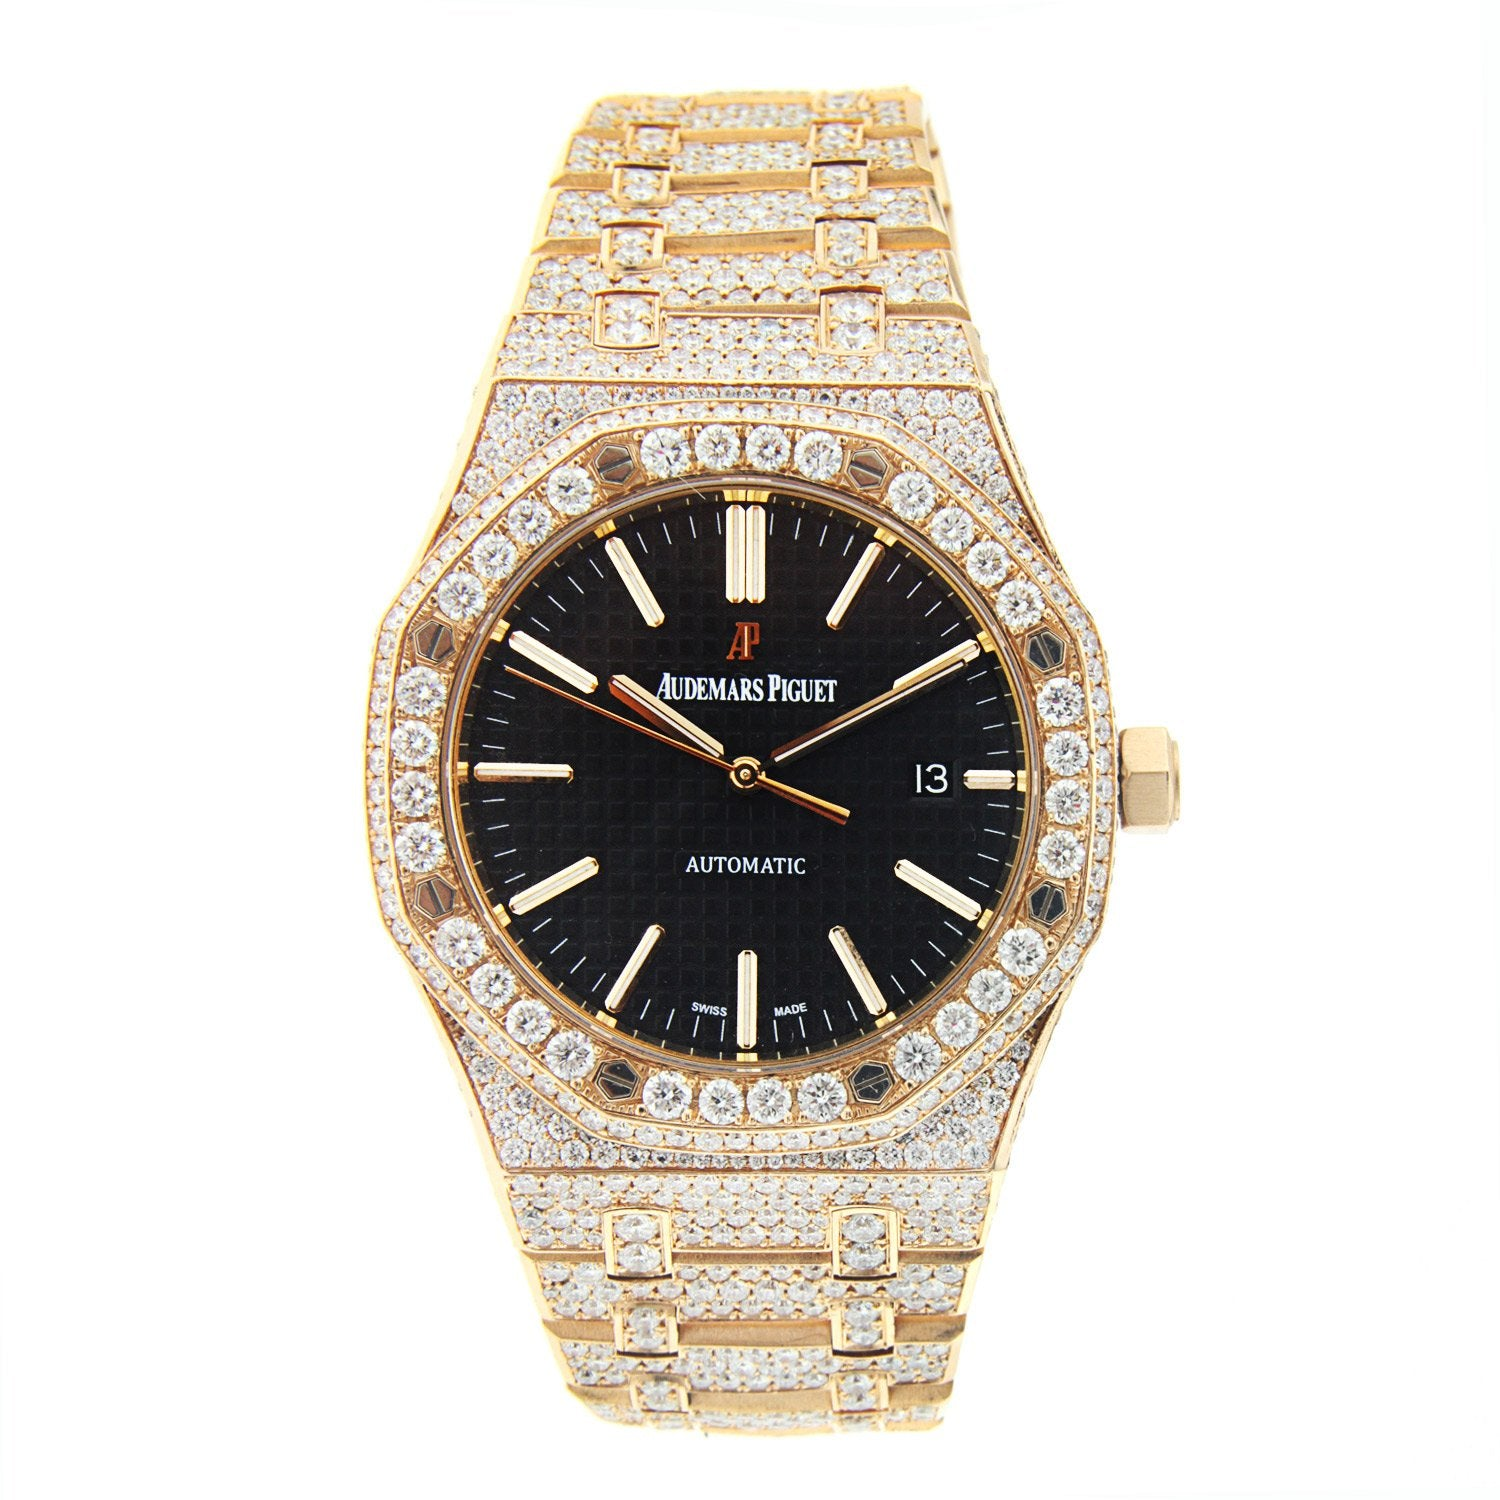 Audemars Piguet Royal Oak Pink Gold with Diamonds - 15400OR.OO.1220OR.01